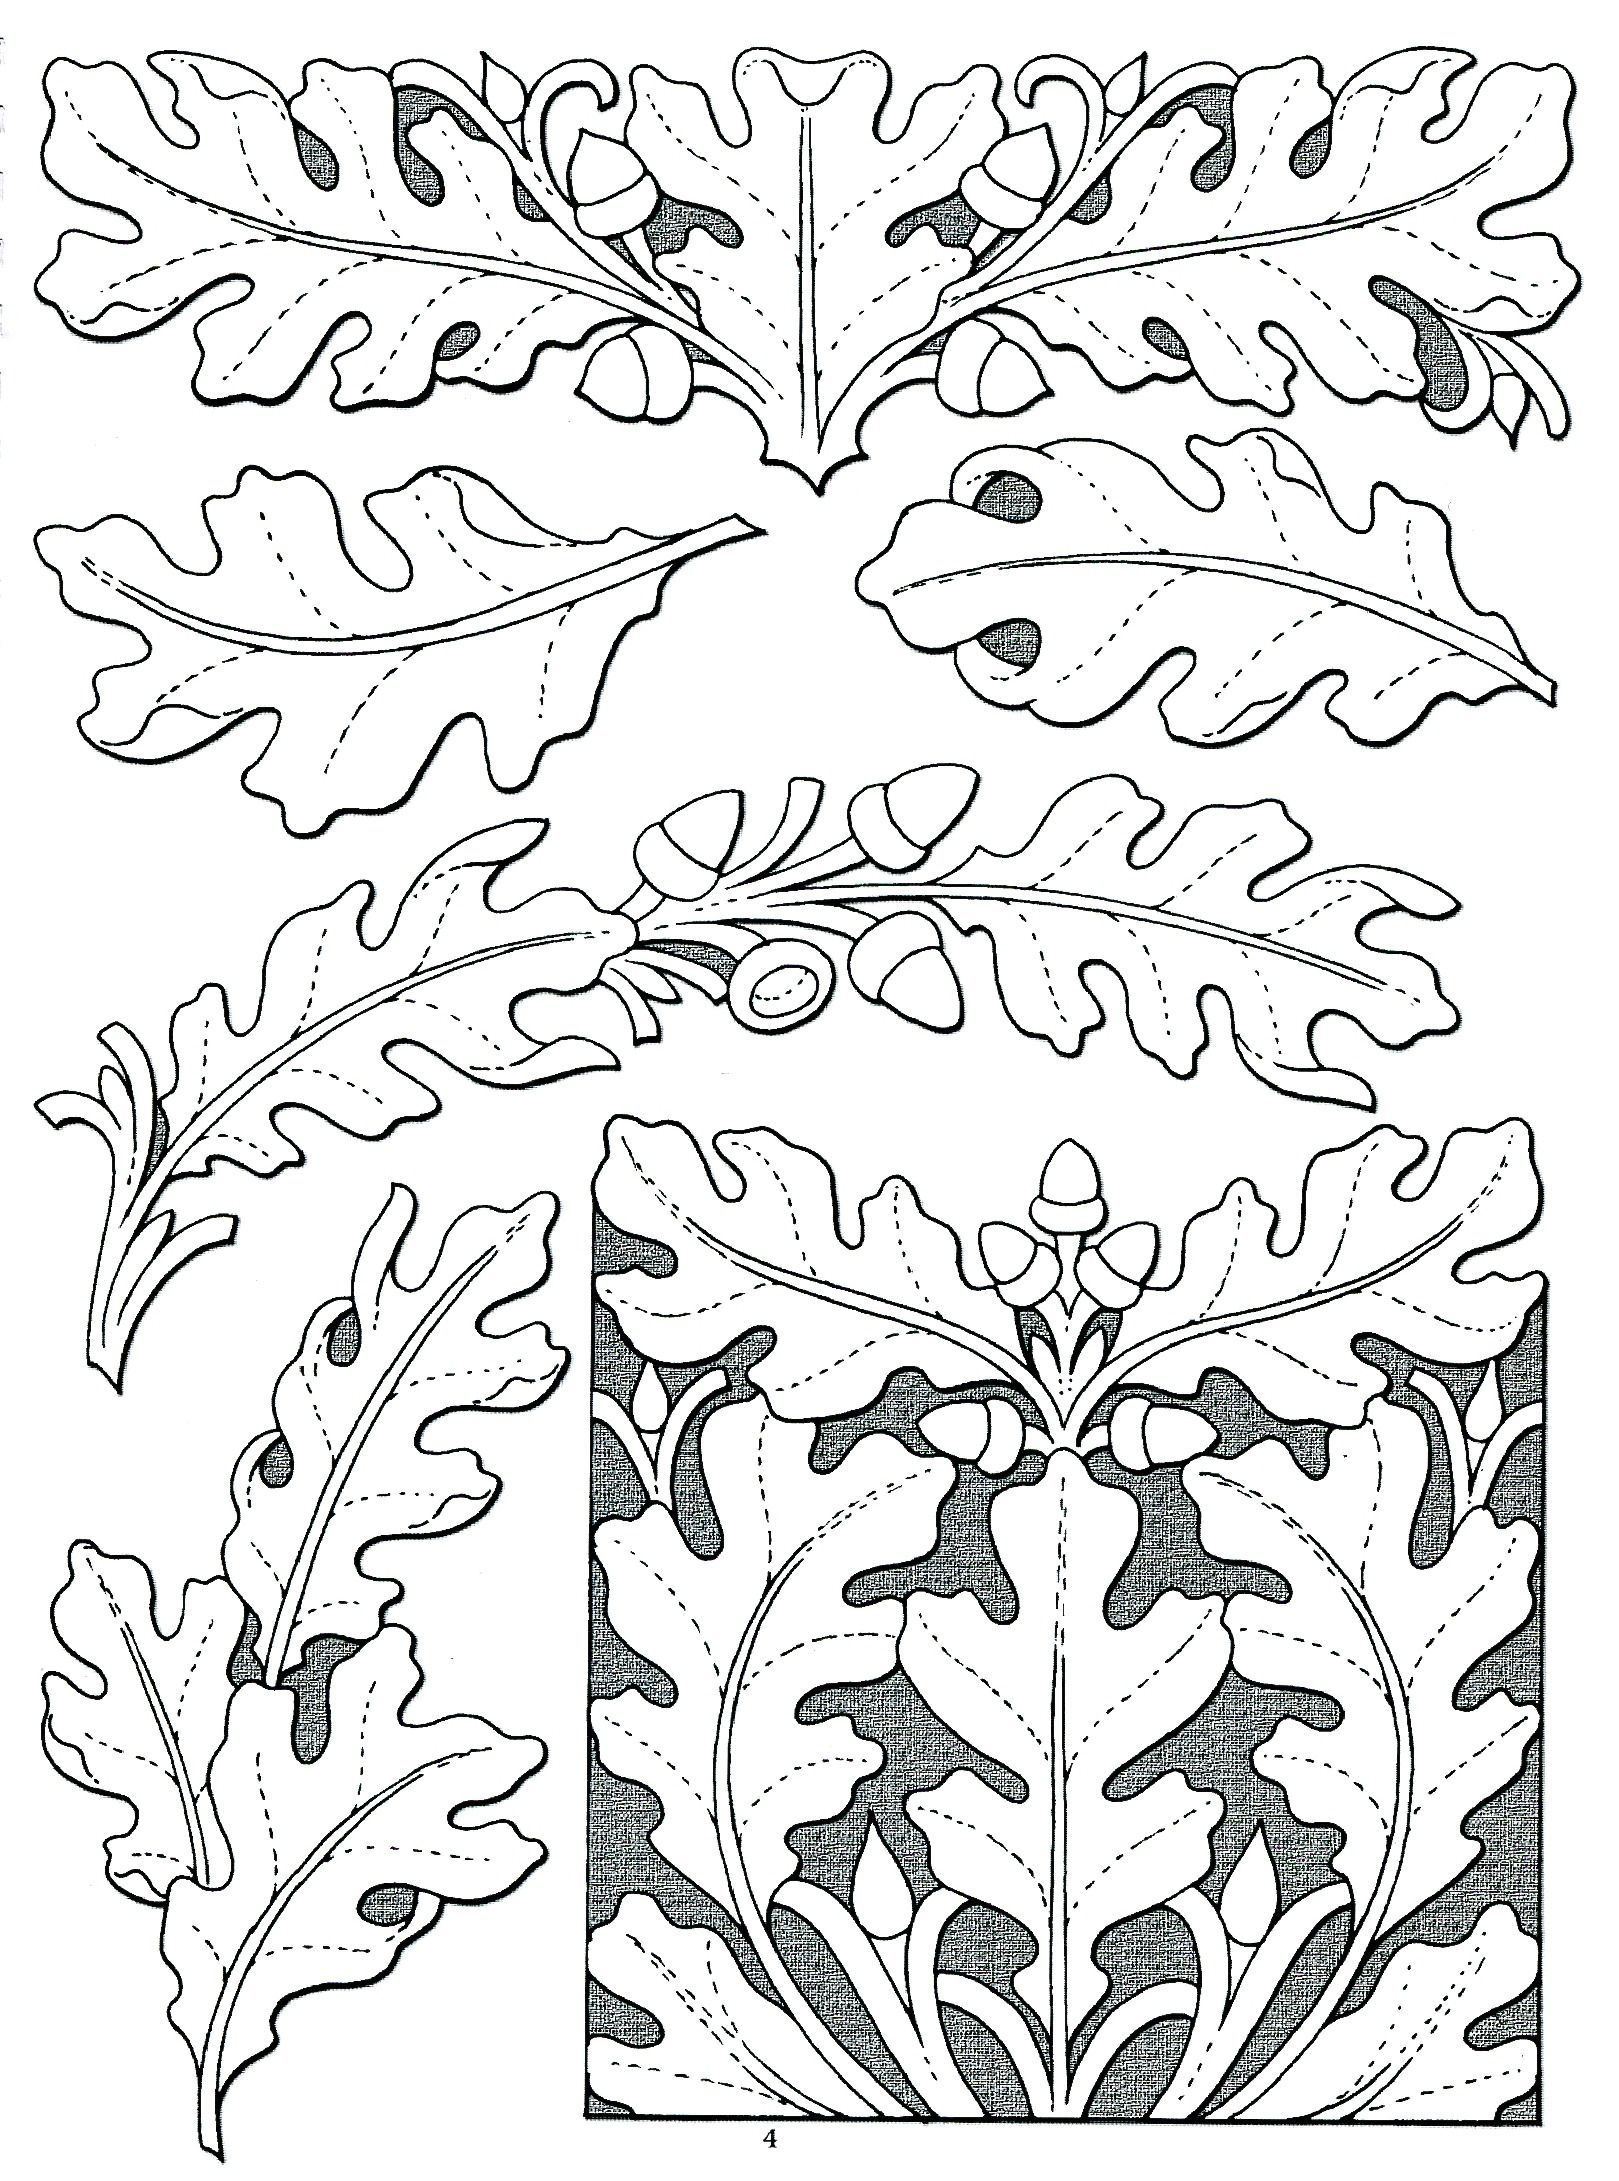 Inspirational Free Printable Leather Tooling Patterns  | Leather - Free Printable Oak Leaf Patterns